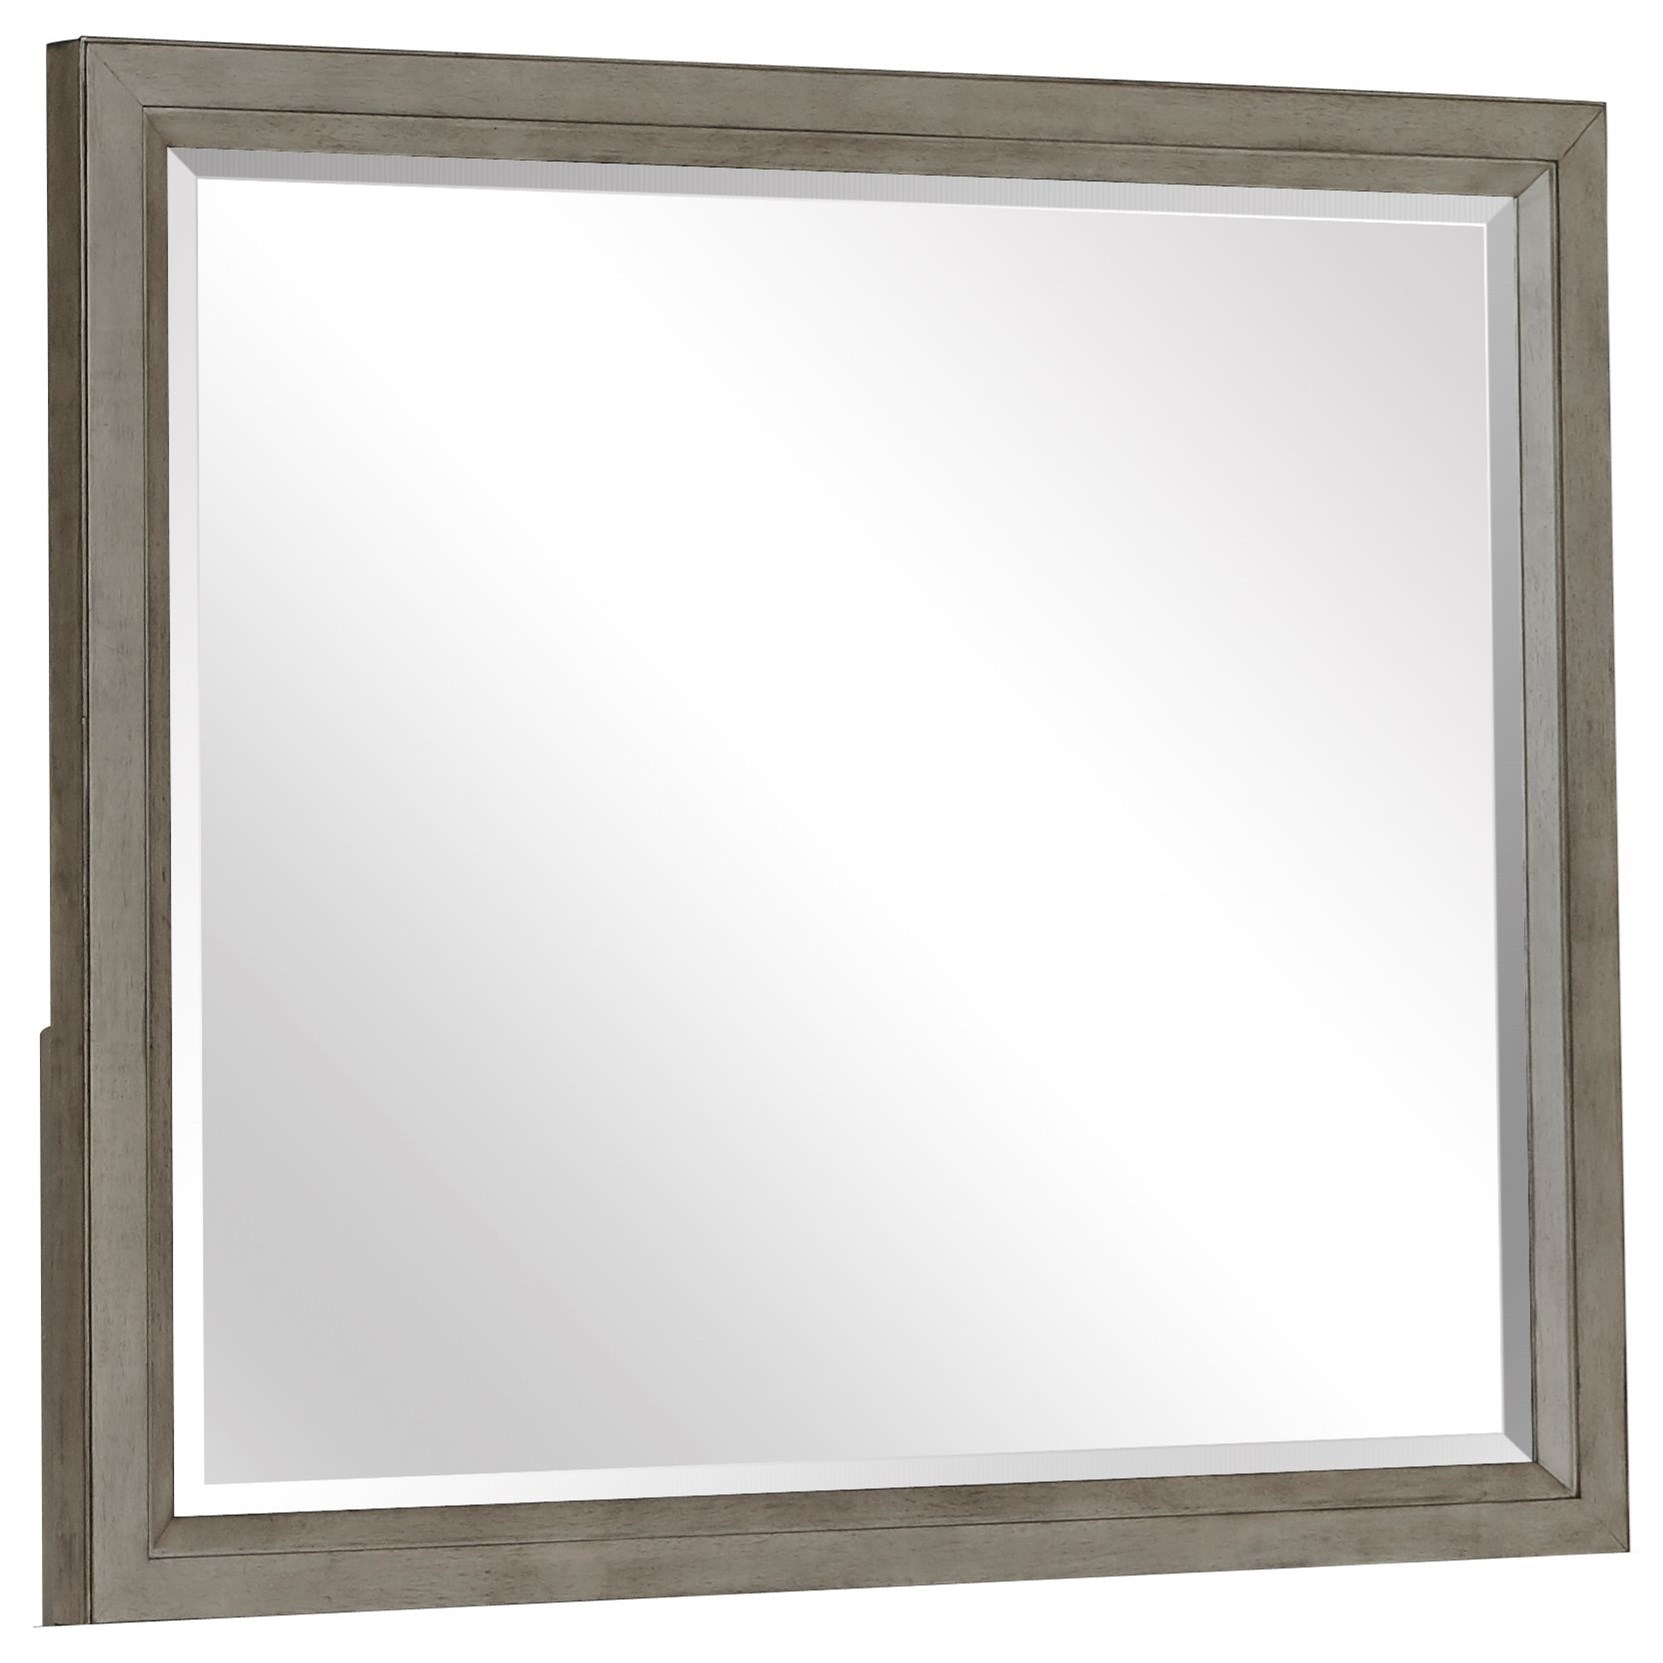 Atelier Mirror by Magnussen Home at Upper Room Home Furnishings